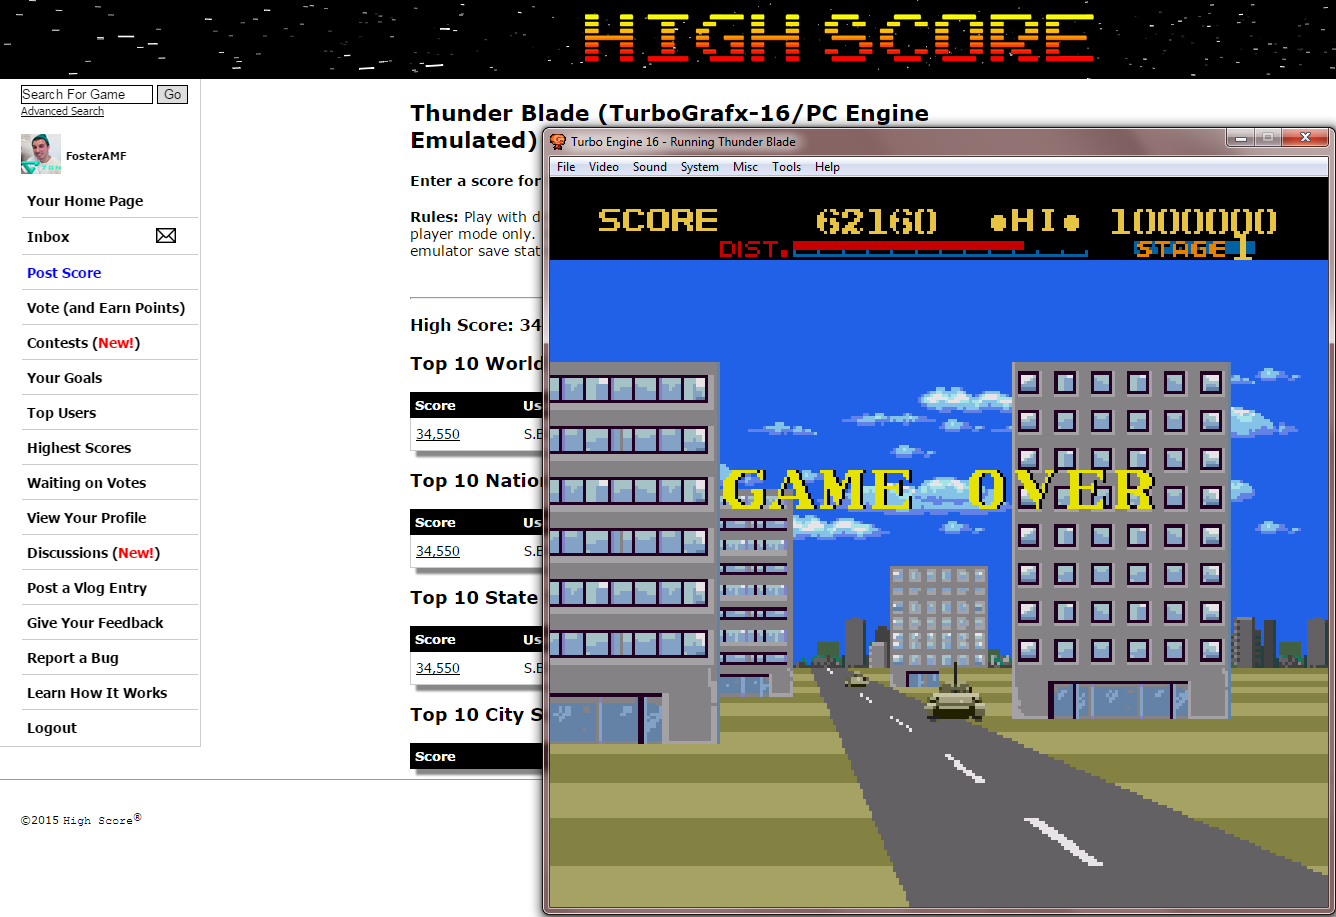 FosterAMF: Thunder Blade (TurboGrafx-16/PC Engine Emulated) 62,160 points on 2015-01-26 23:23:20